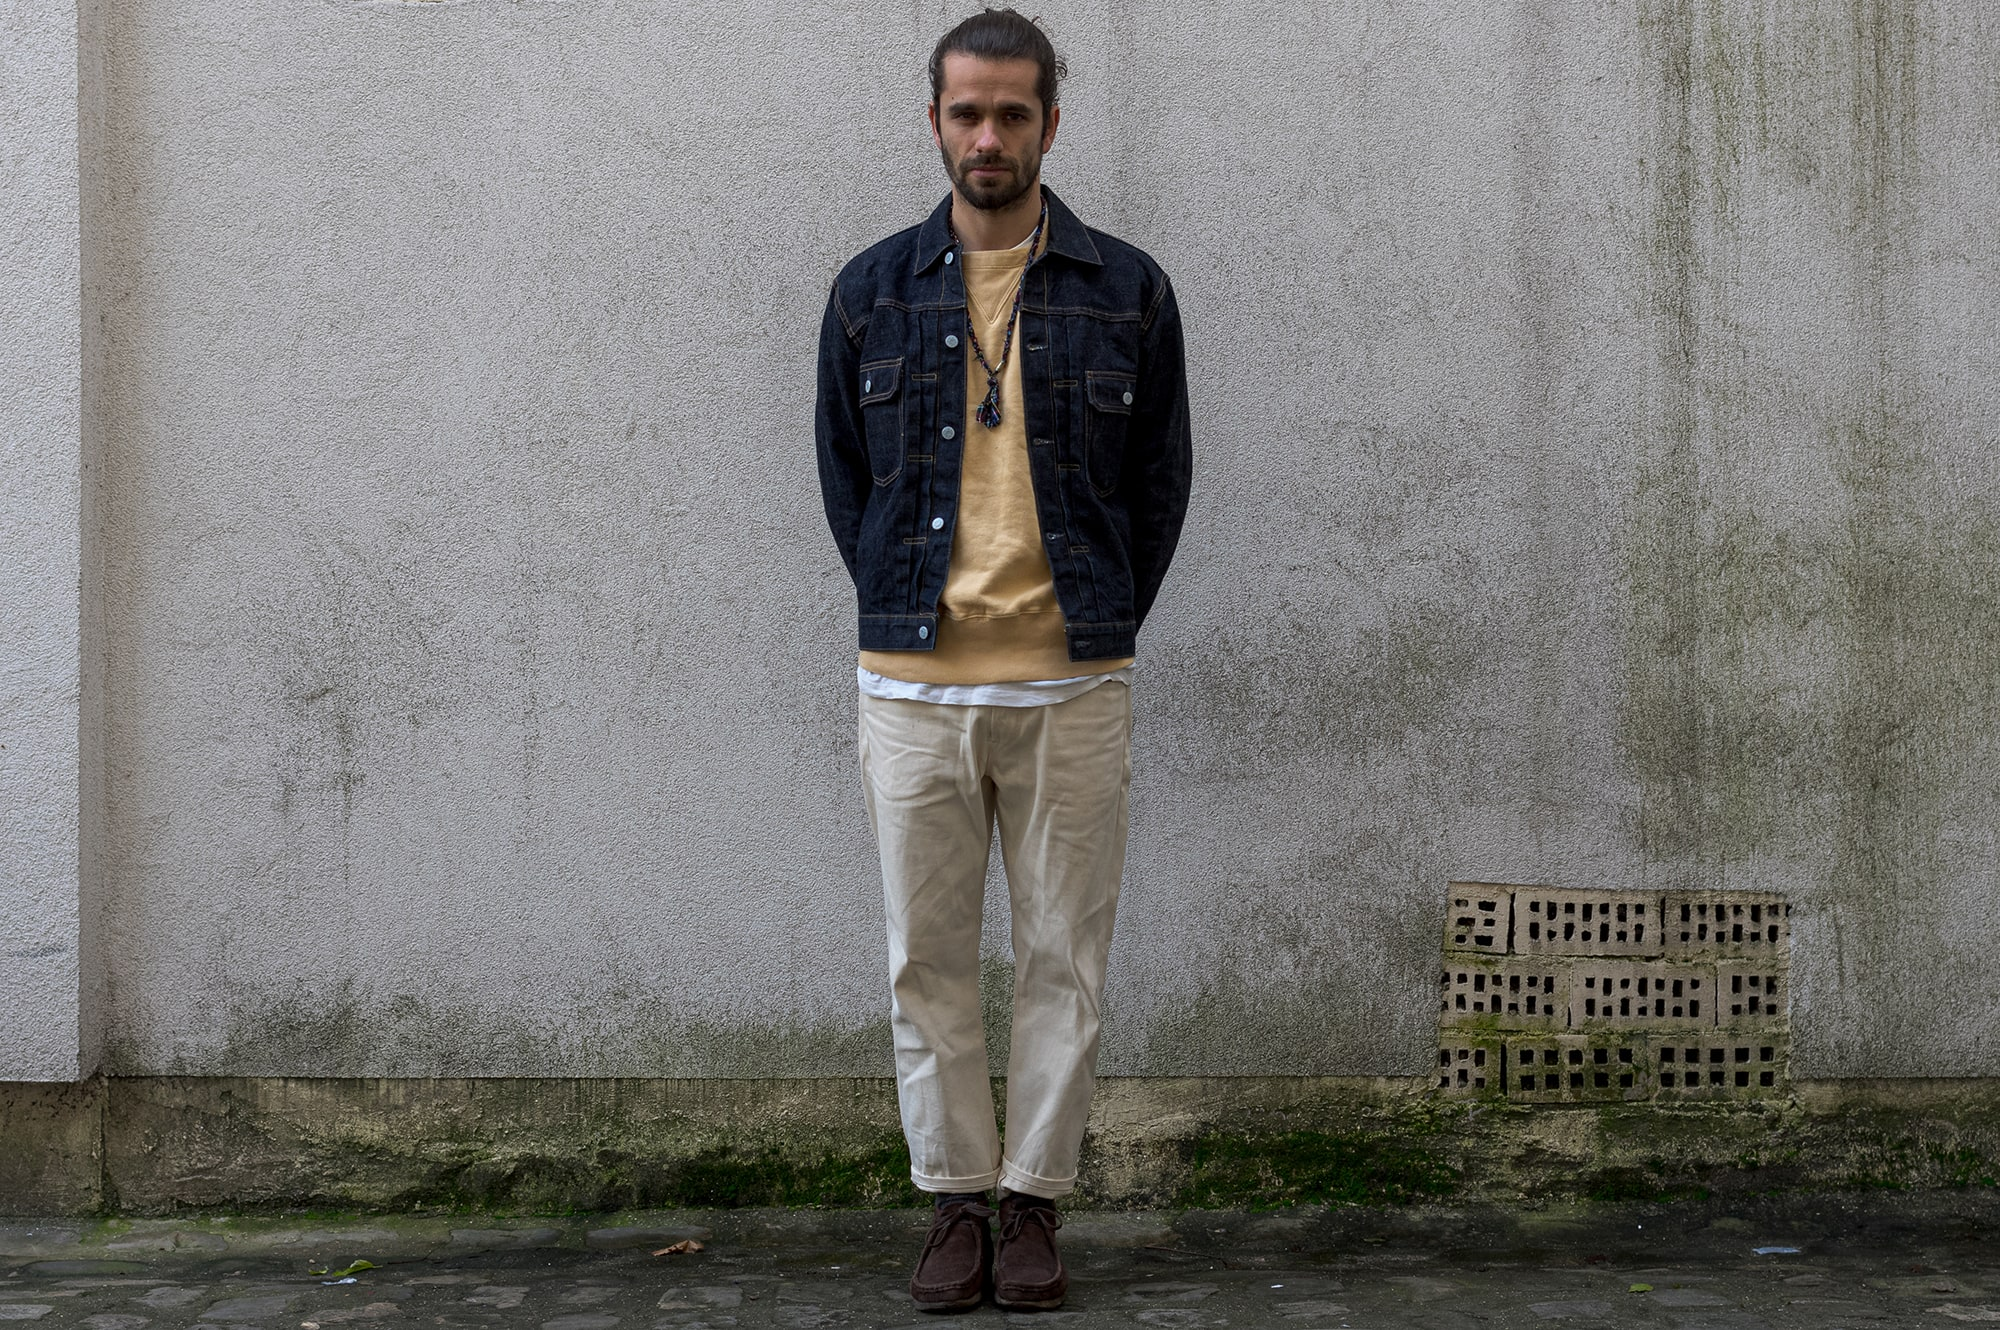 Suit & Supply trucker jacket - Levi's Vintage Clothing sweater - Edwin jeans - Clarks Wallabee shoes - Borali necklace